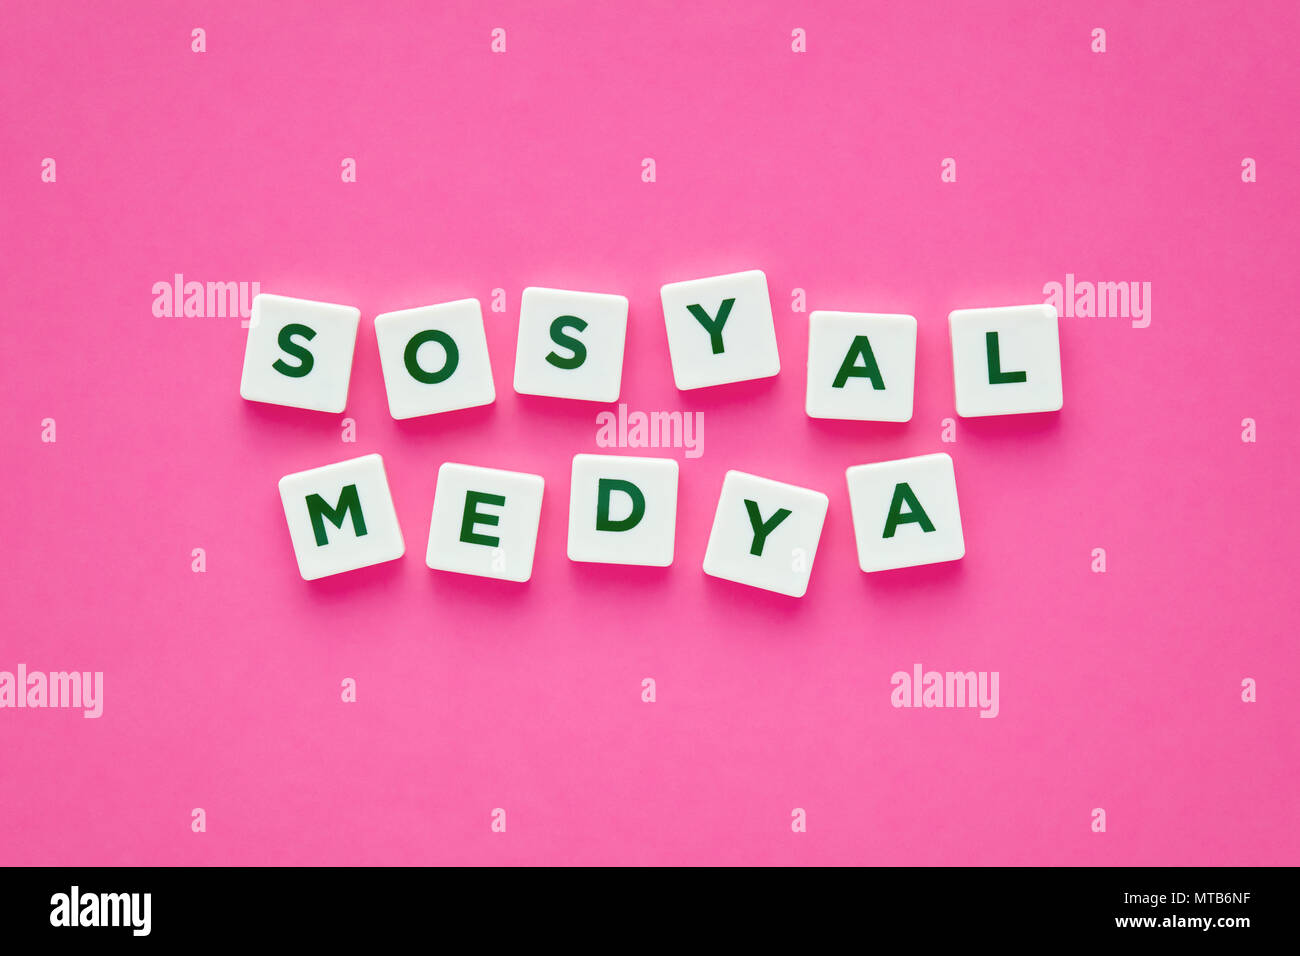 social media words written in turkish with green letters on white